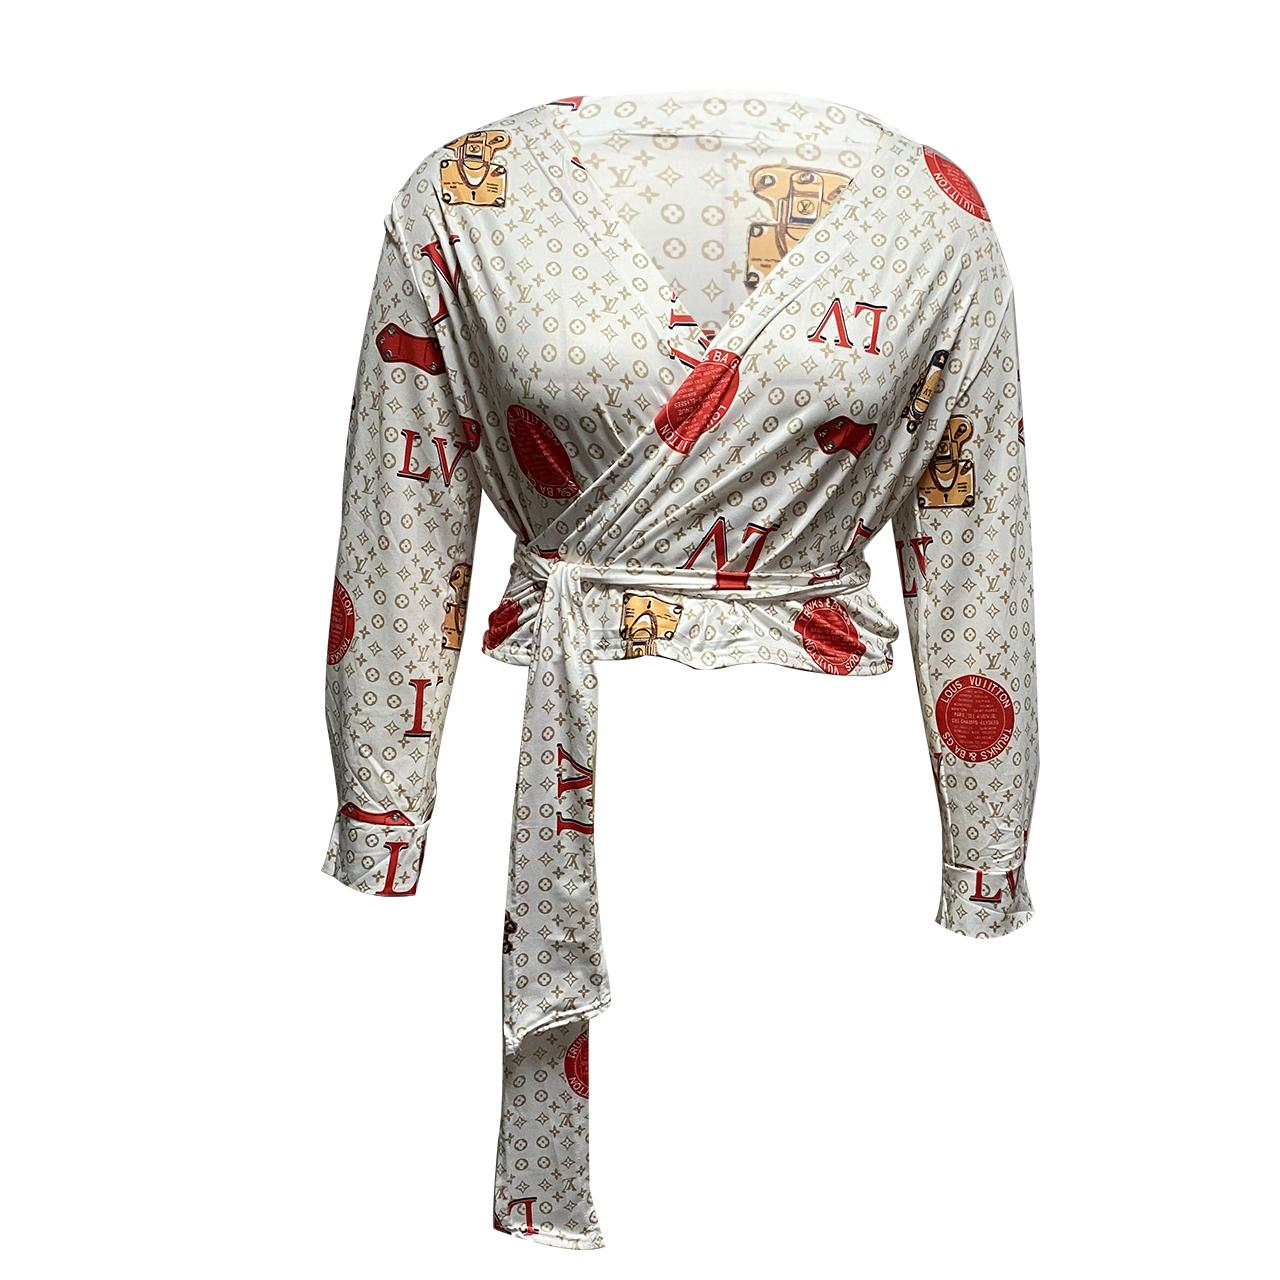 New Arrival Women Fashion Clothing V-Neck Bandage Printing Shirts For Women Blouses Ladies Tops Long Sleeve Tops